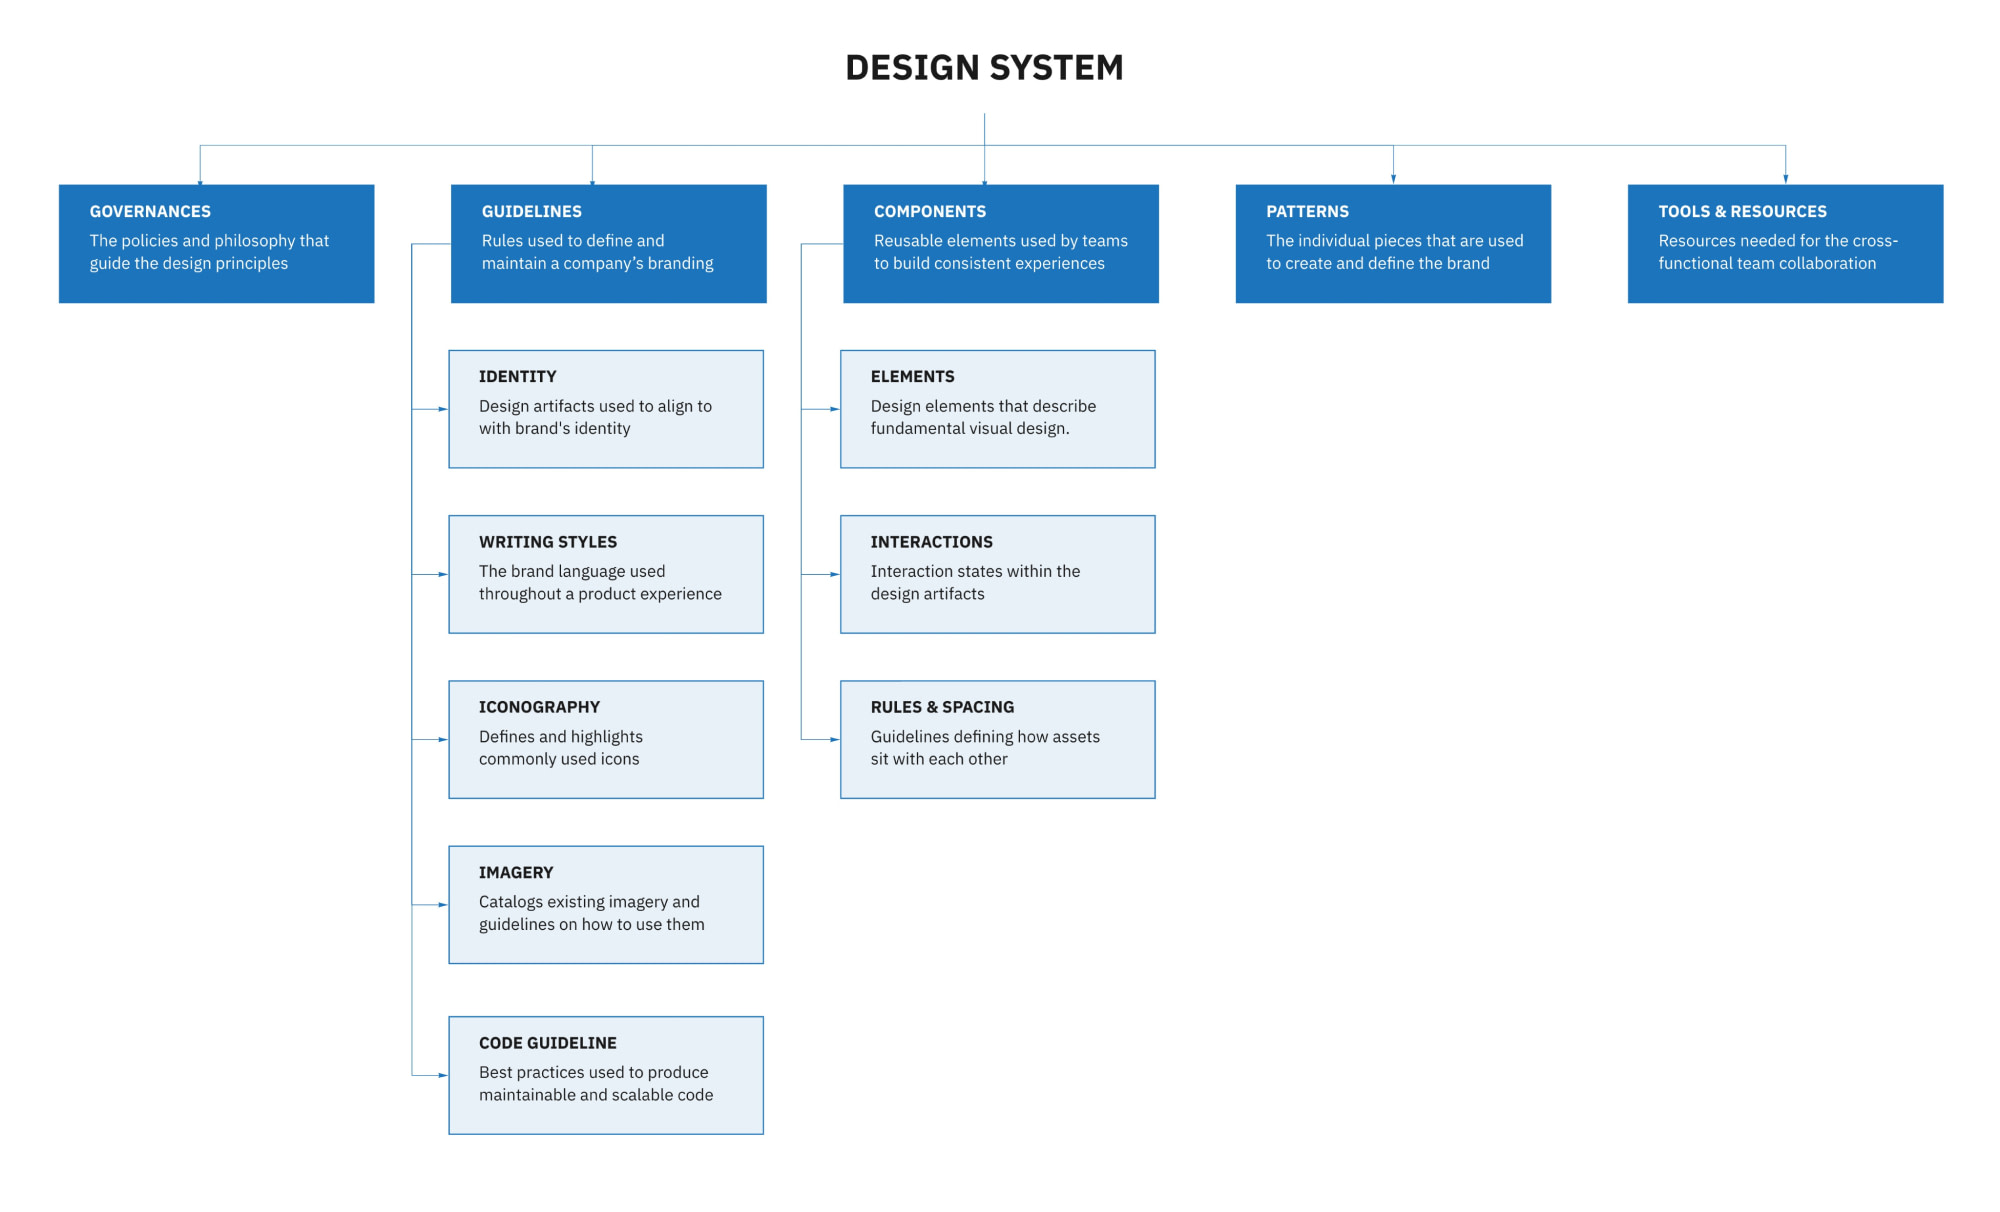 Design system is a collection of guidelines and reusable elements that help designers and developers work efficiently as they build cohesive user experiences and brand standards across products.